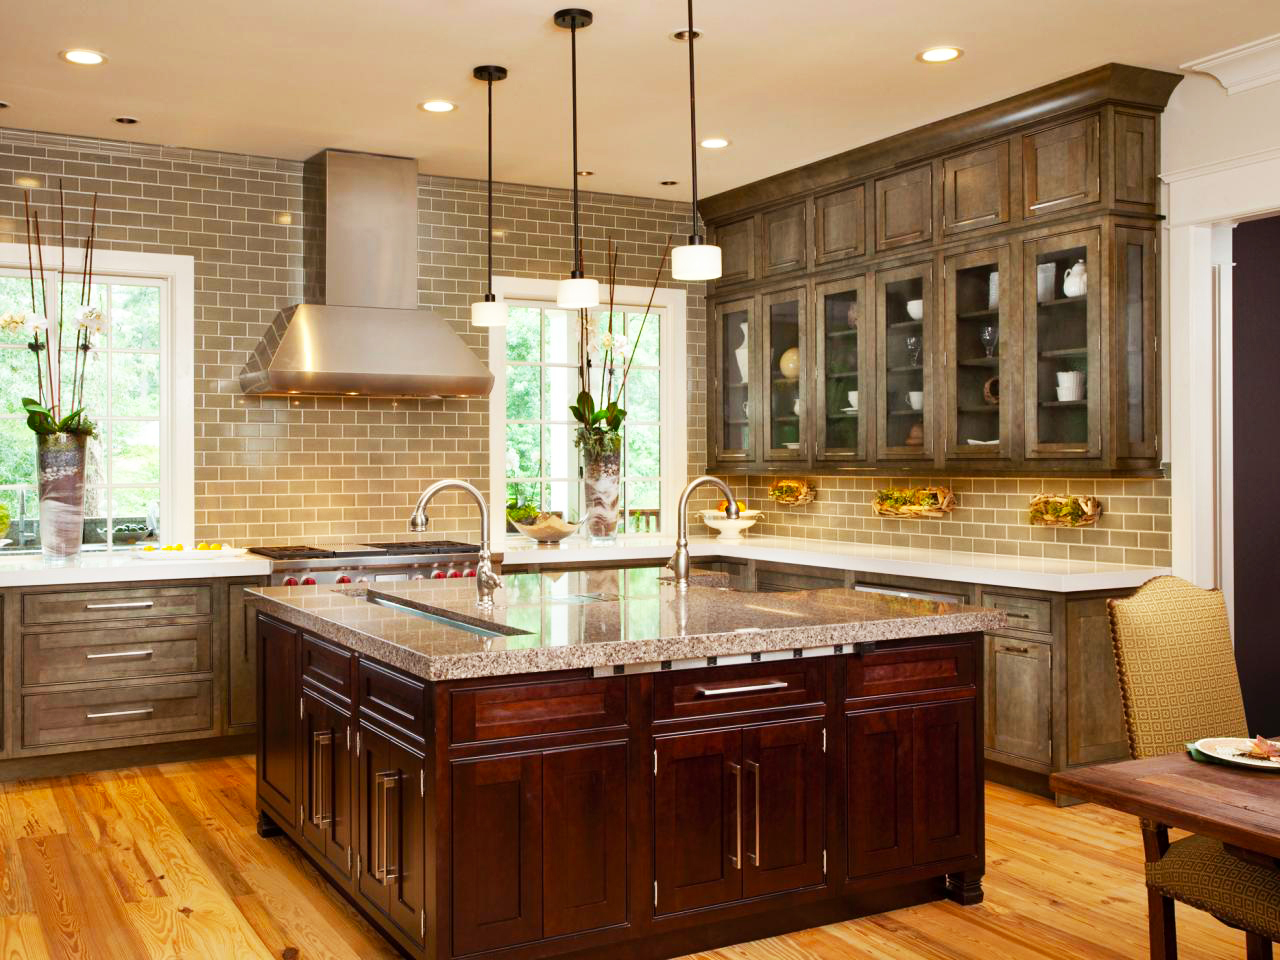 Ideas for custom kitchen cabinets roy home design for Kitchen cabinets